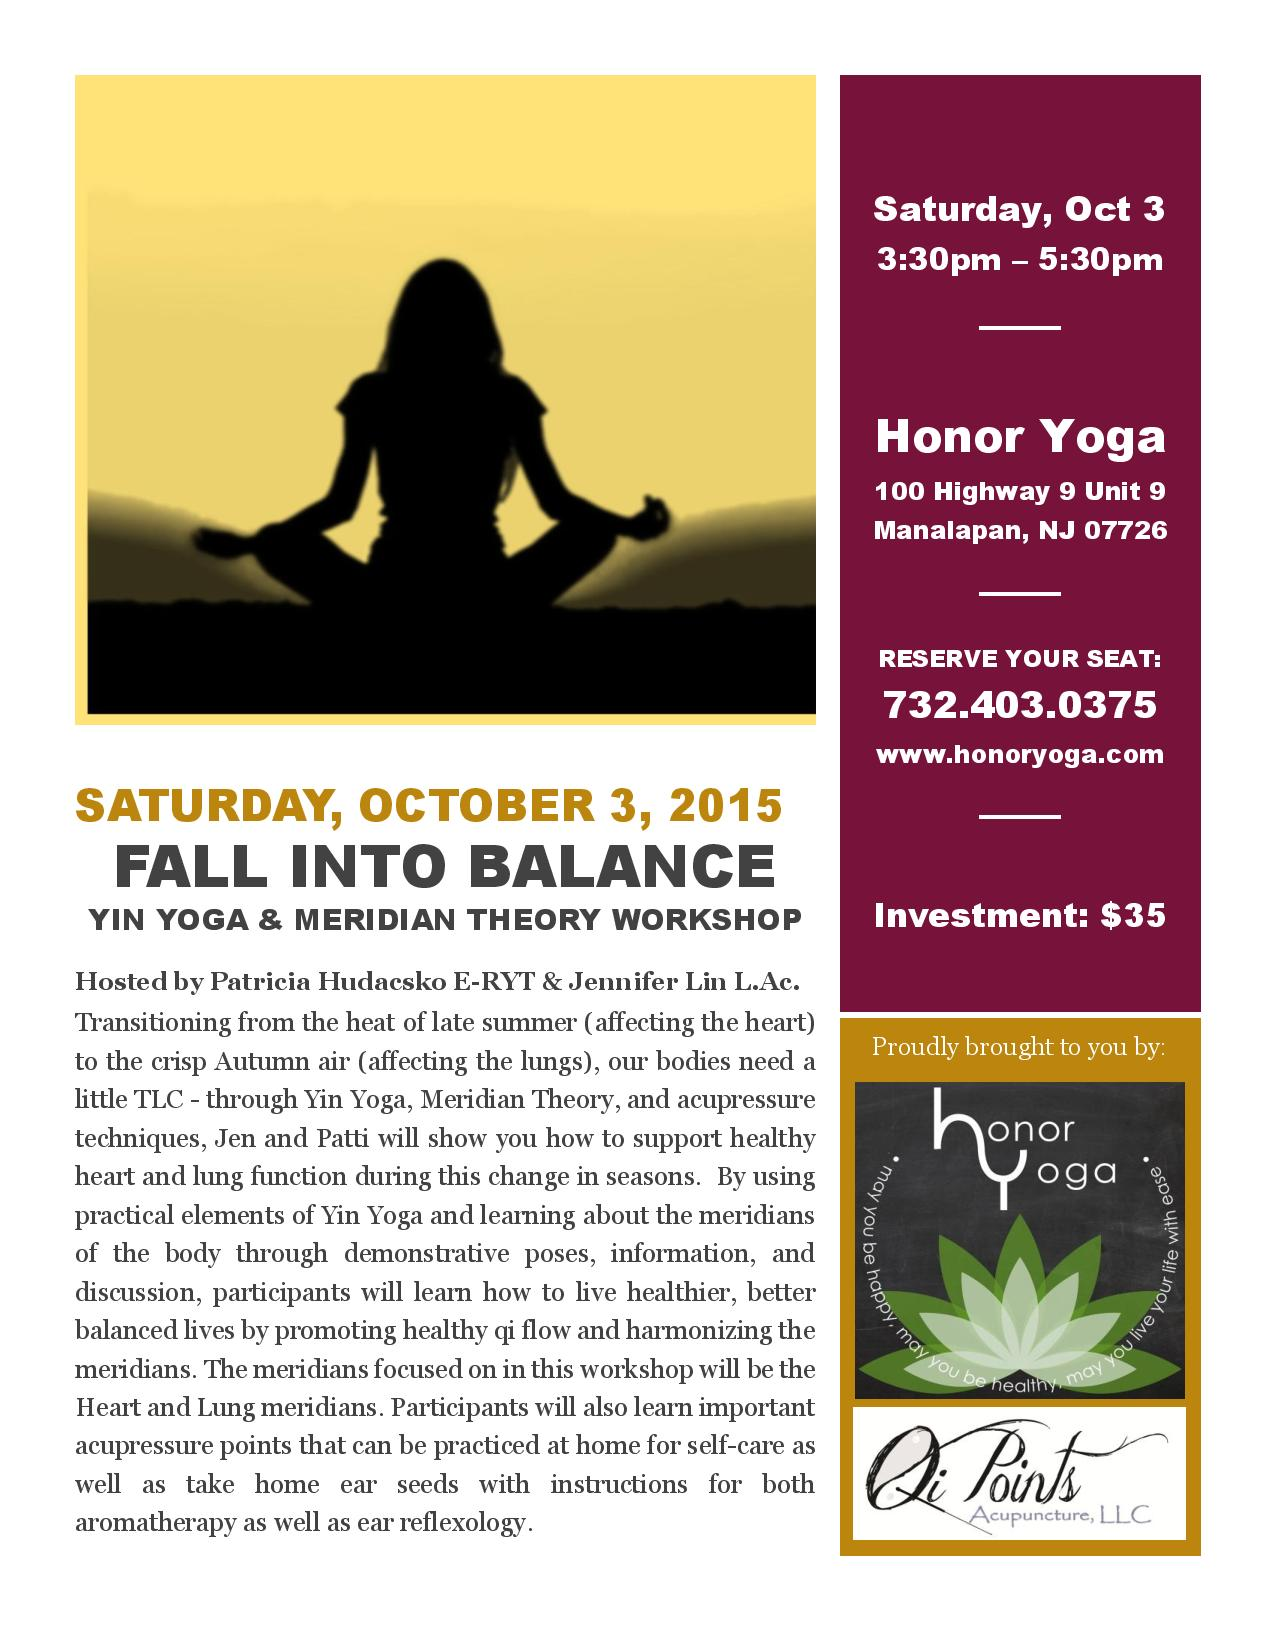 Come join us for an afternoon of yoga, merdian theory, and FUN!